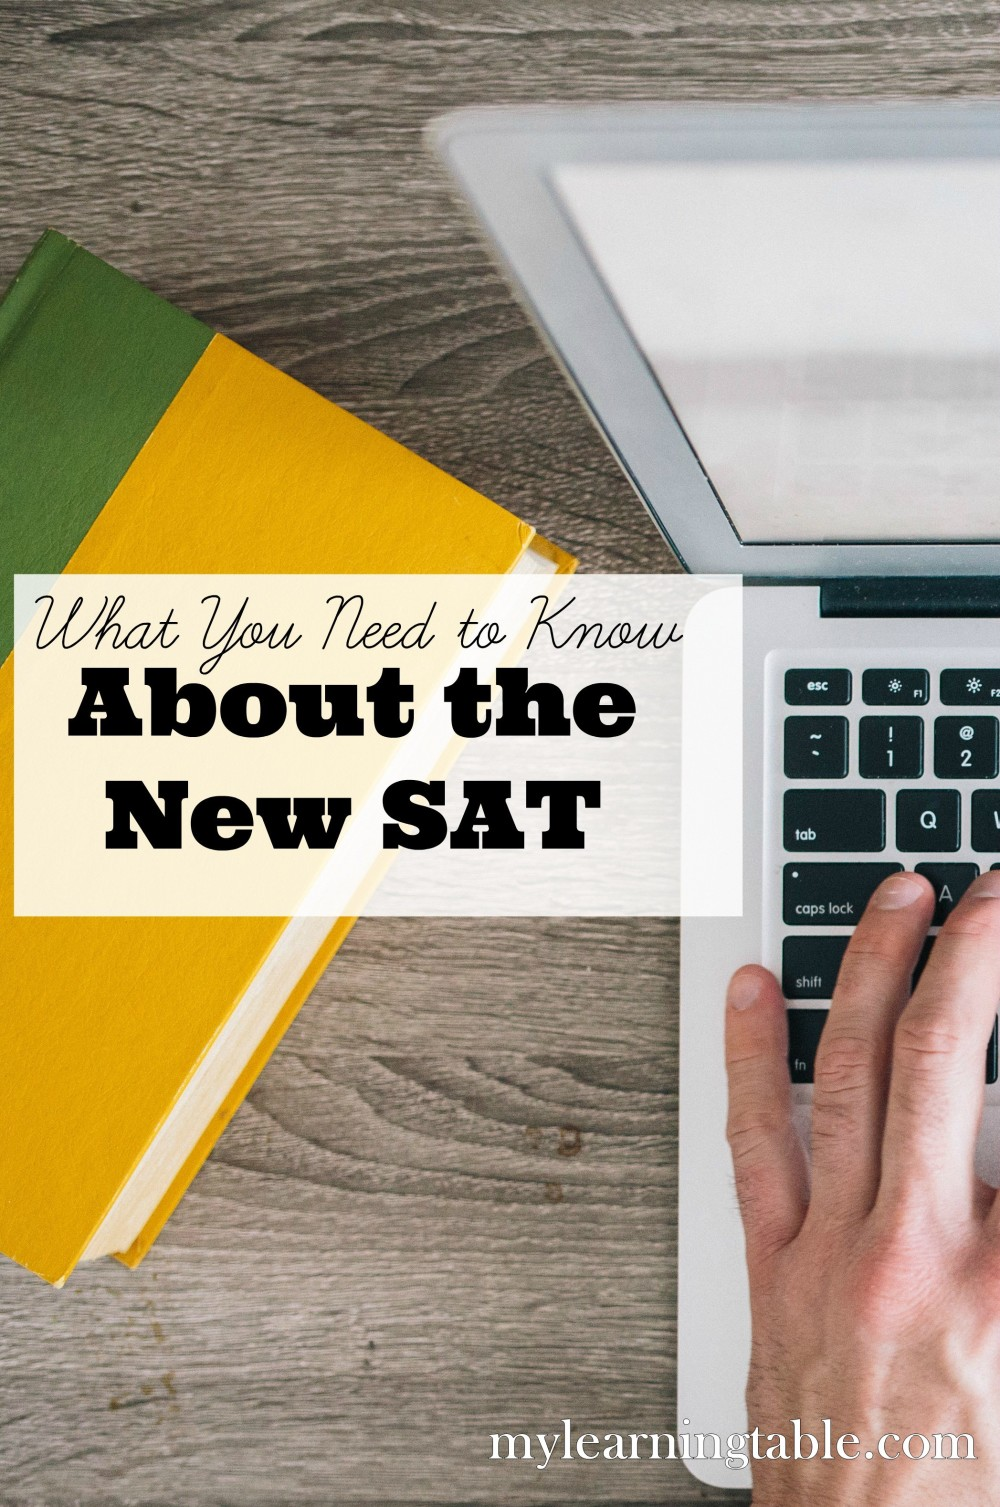 The SAT has changed beginning in 2016. Find out what you need to know now to prepare for the new test and what the changes mean for homeschool students.